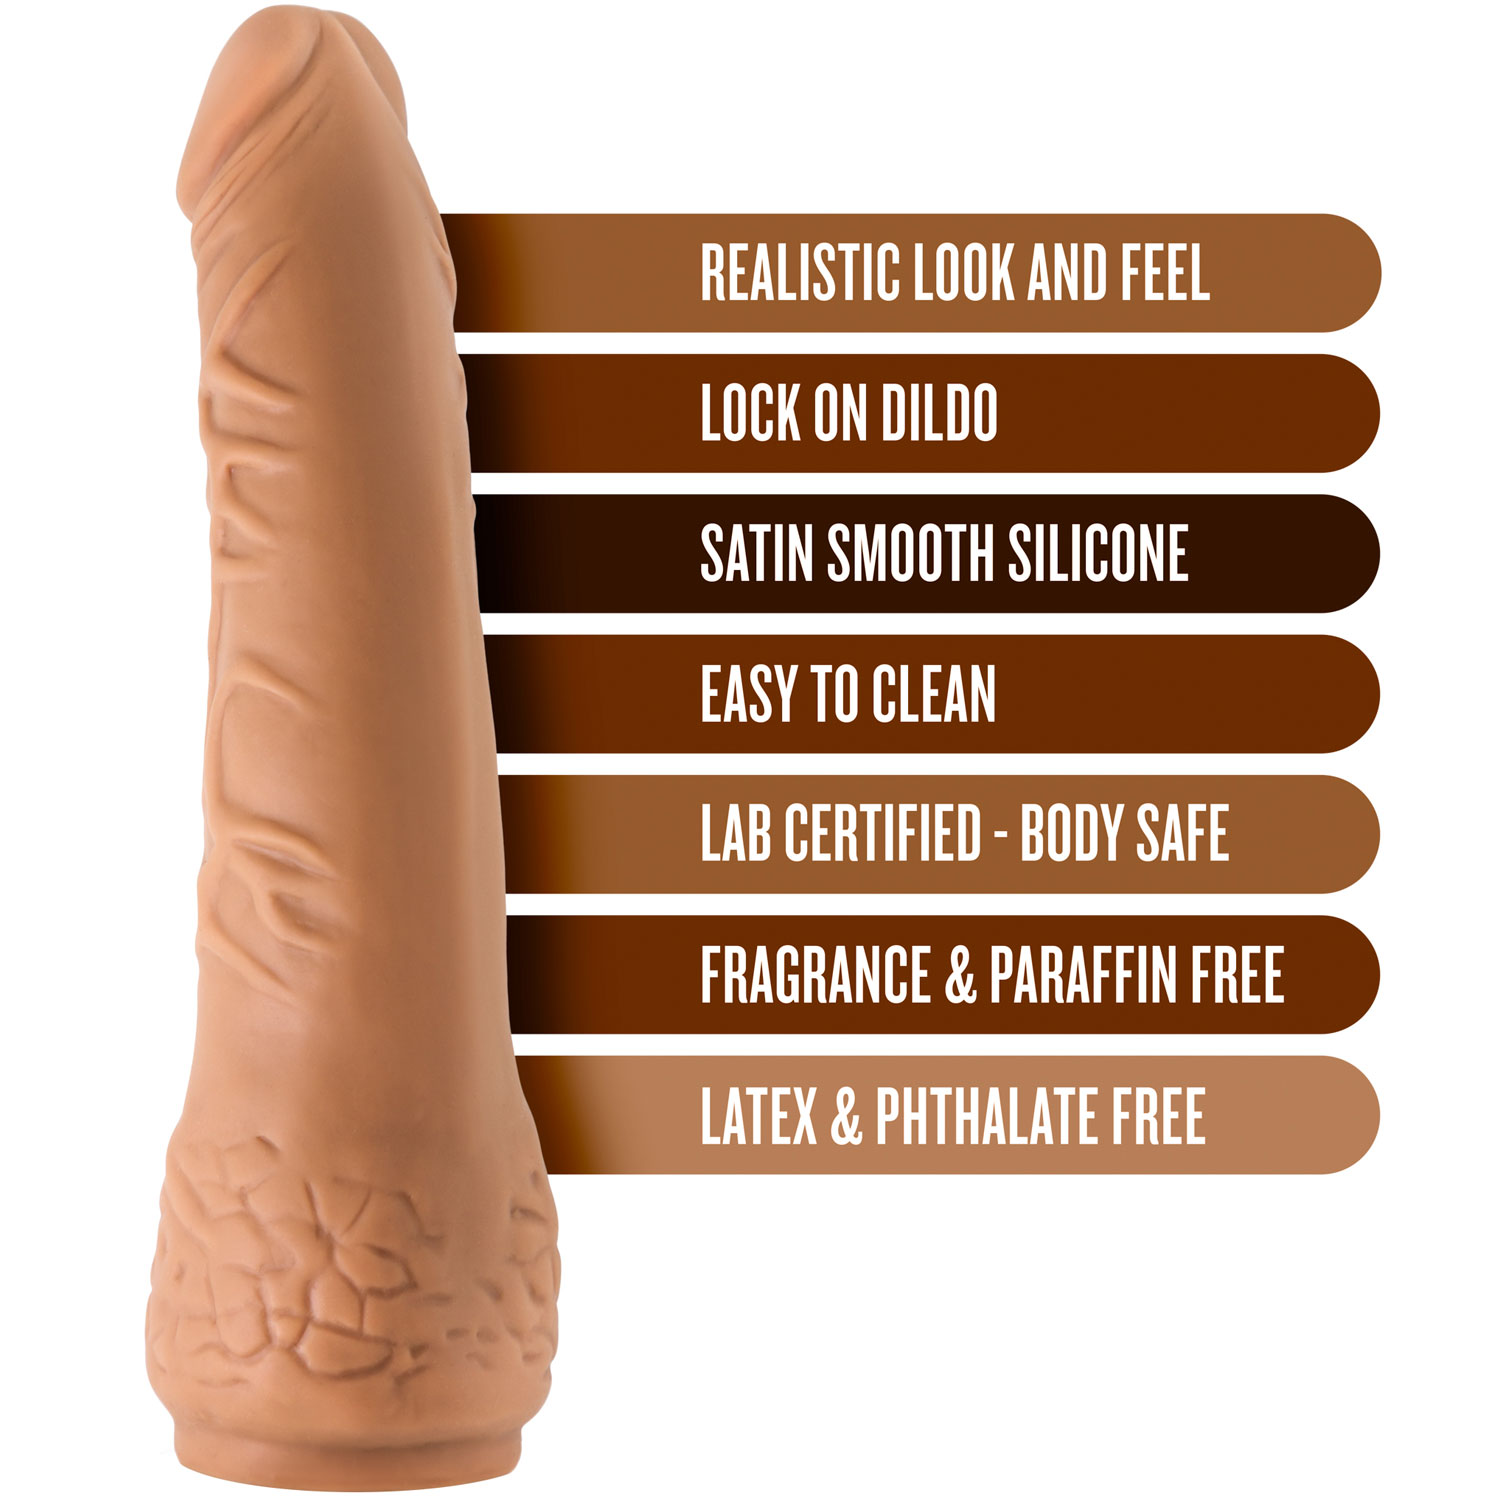 The Realm Realistic 7.5 Inch Silicone Lock On Dildo - Features